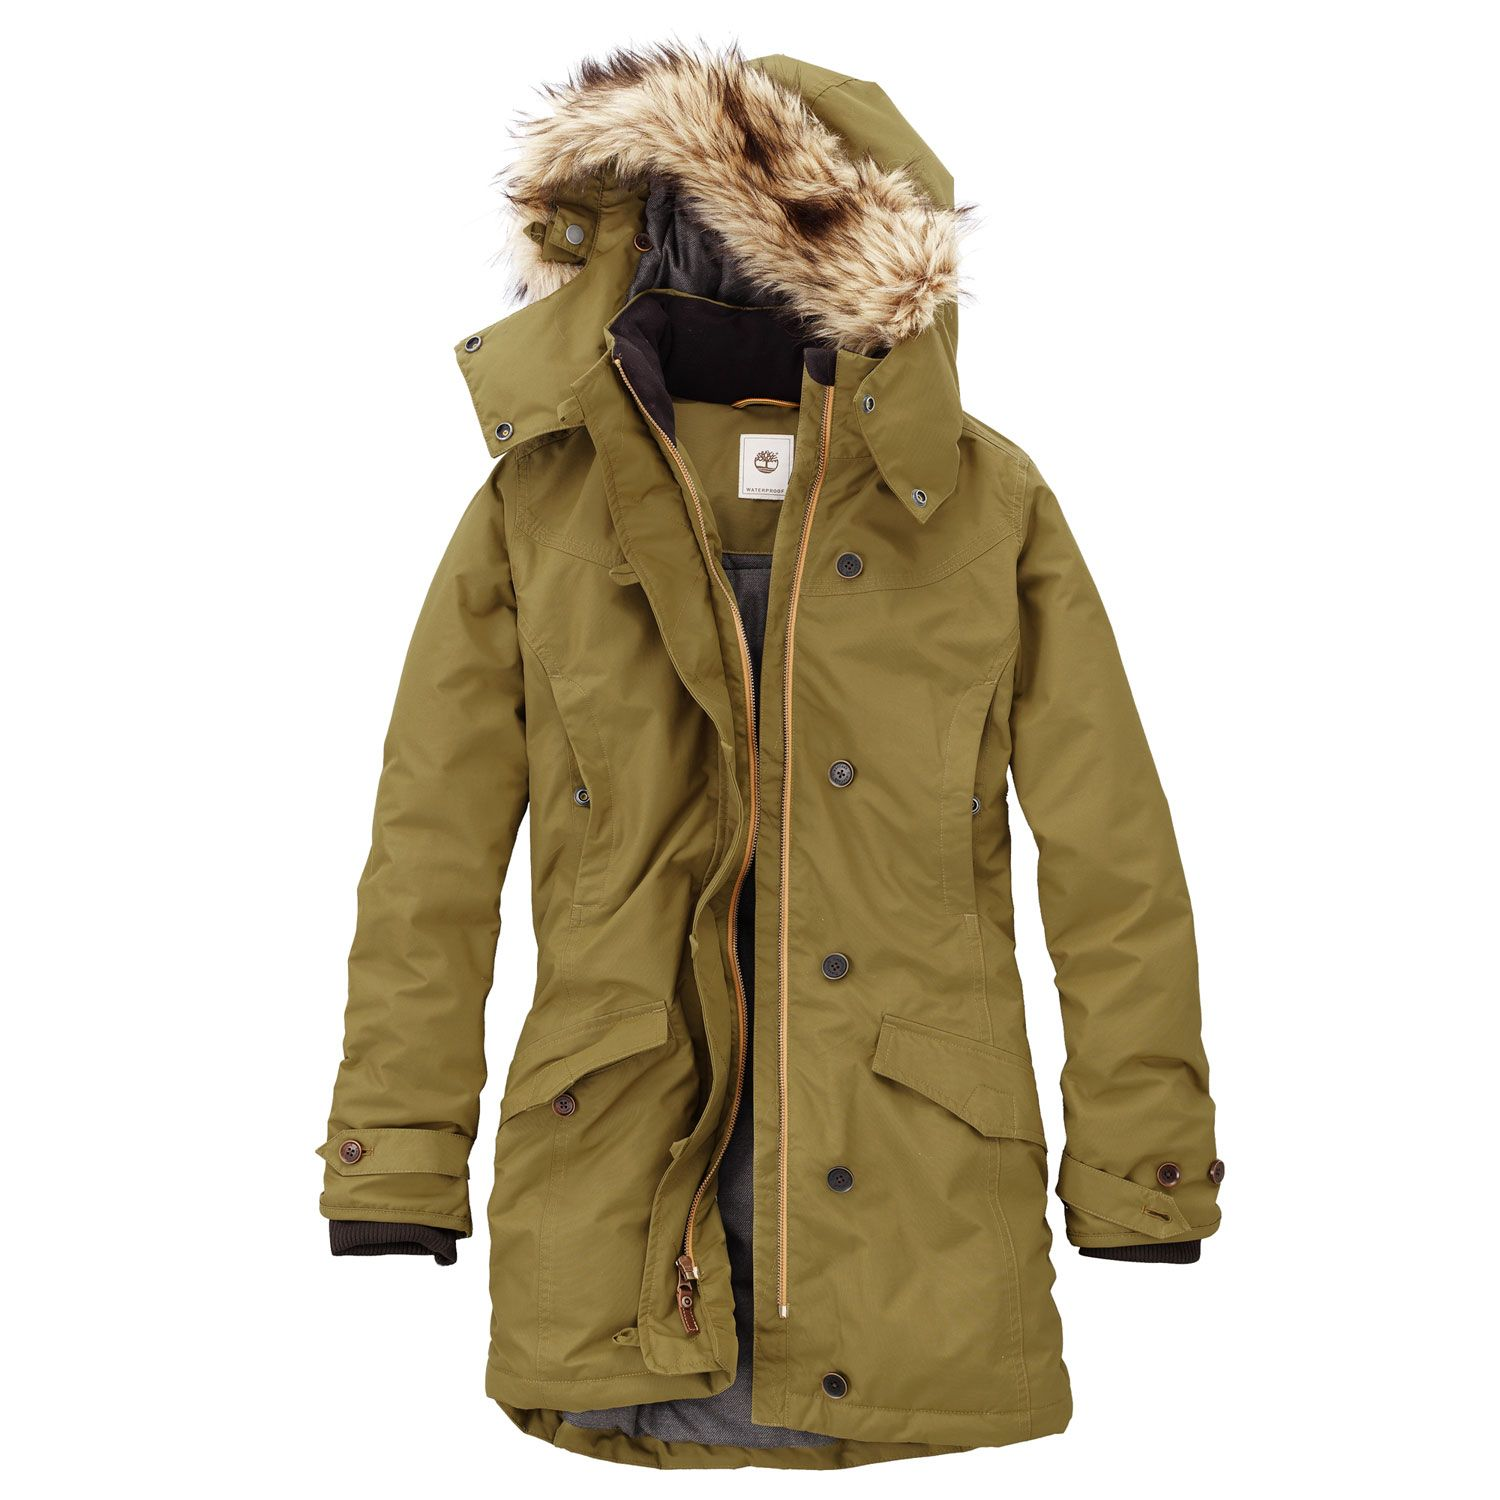 Timberland - Women's Waterproof Down Parka | GEAR | Pinterest ...